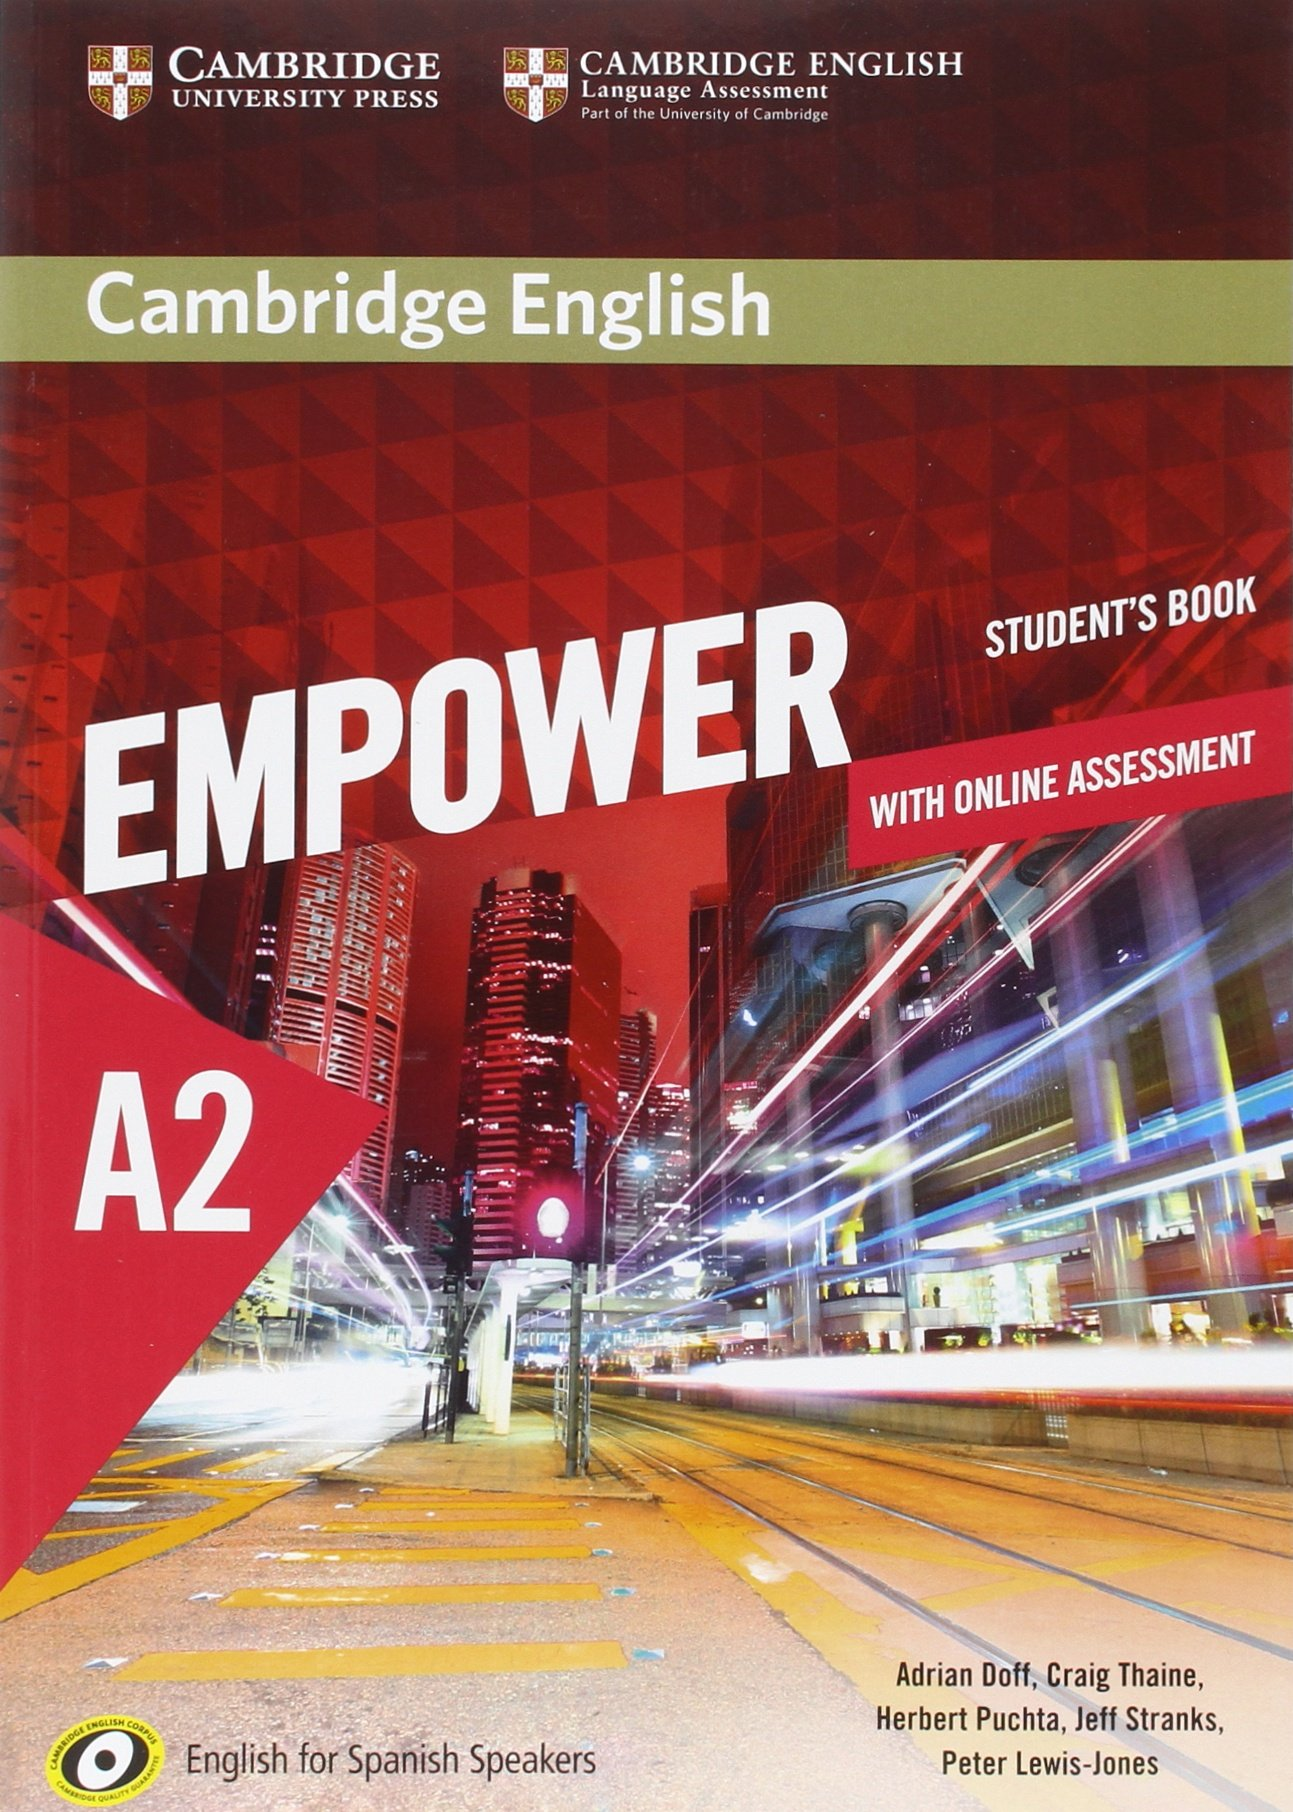 Cambridge English Empower for Spanish Speakers A2 Student's Book with Online Assessment and Practice (Inglés) Tapa blanda – 10 jun 2016 Adrian Doff Craig Thaine Herbert Puchta Jeff Stranks